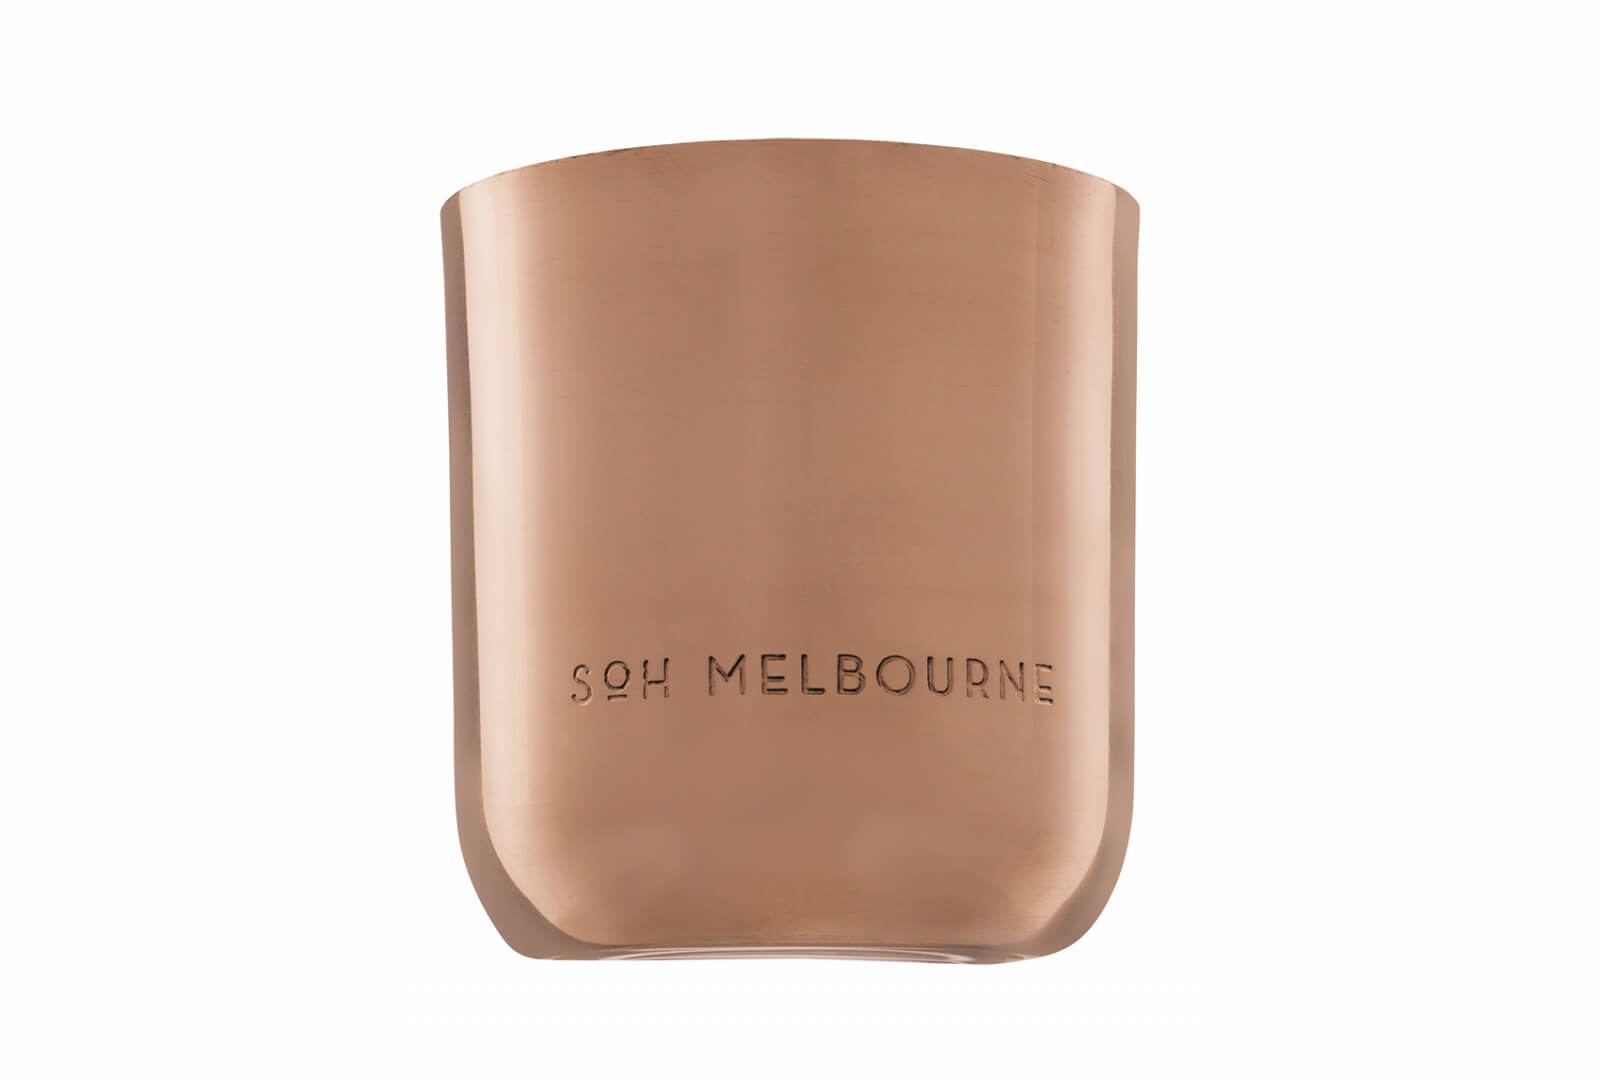 Candle in Copper Vessel | SoH Melbourne | Est Living